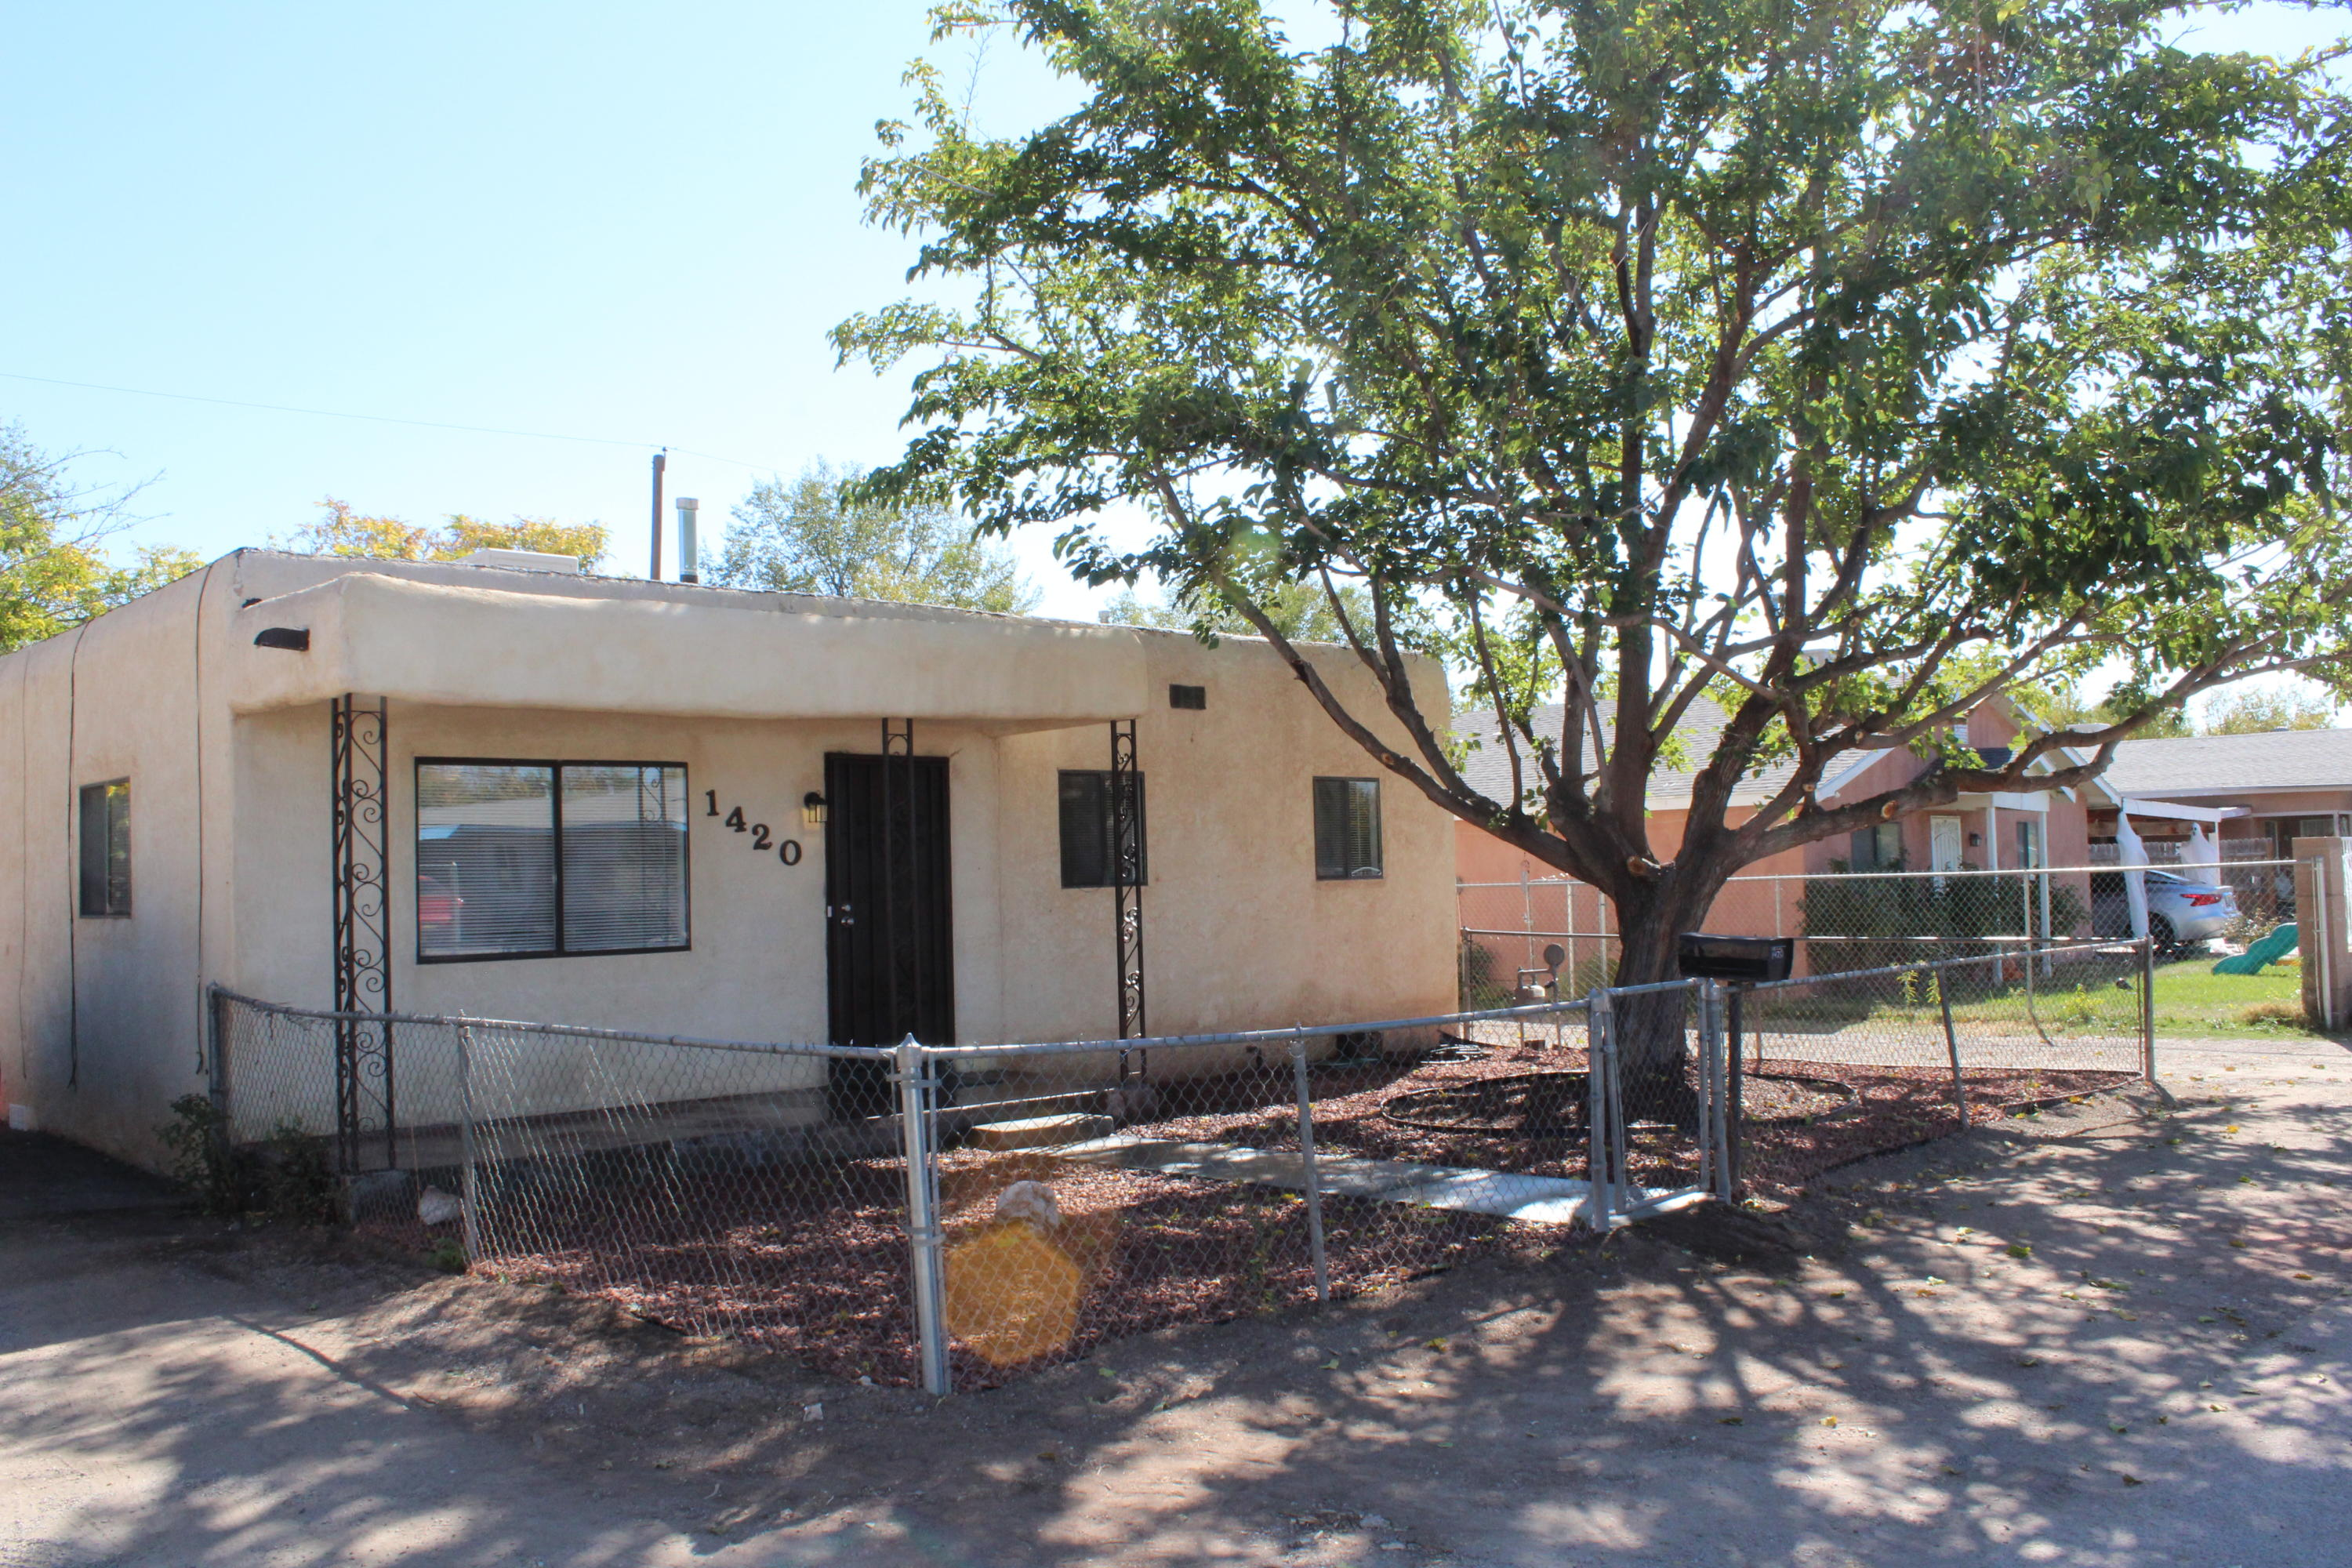 This adorable home is tucked away in the south valley in a well established neighborhood.Features all new flooring, new countertops, bathrooms have been renovated, fresh paint and new blinds throughout, all new ceiling fans and lighting.All appliances included, gas stove features five burners and self-cleaning oven, and refrigerator haswater and ice maker, washer and dryer are as is (are in working condition), new front yard landscaping.This home has vehicle access to a  large enclosed  back yard  for gatherings and plenty of room for kids to play.It is conveniently located to shopping,  local eateries, church, community center and bus stop.Sewer line and Termite Inspection have been performed, all is good!!Come and  show this home!  You won't be disappointed.Thank you fo